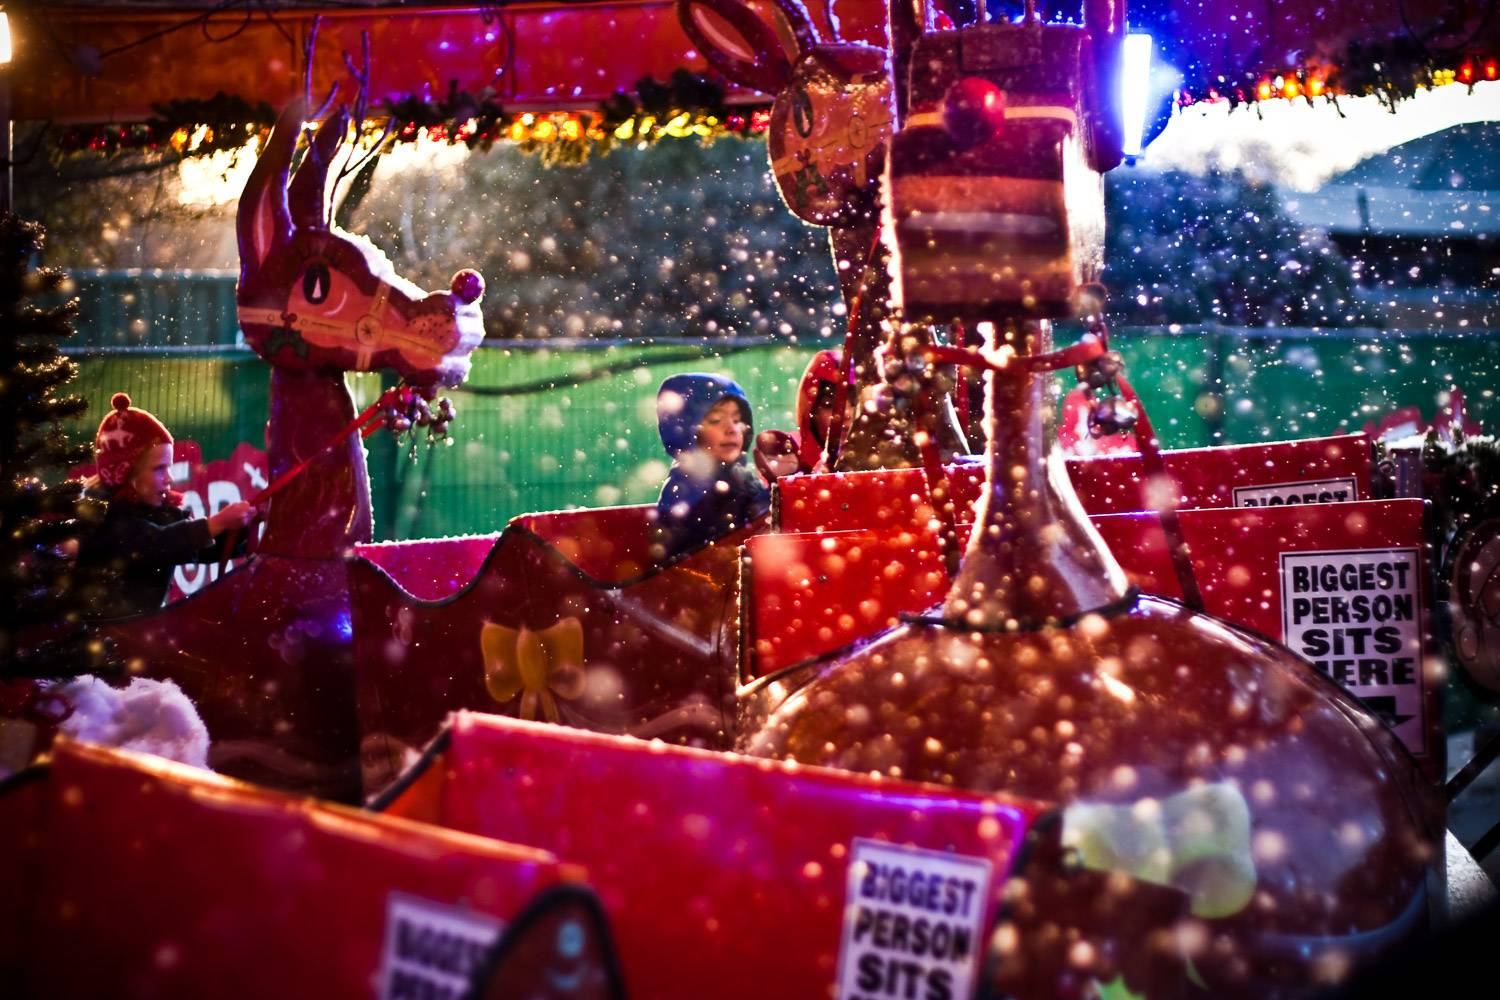 An image of a child riding a reindeer-themed attraction at Hyde Park.